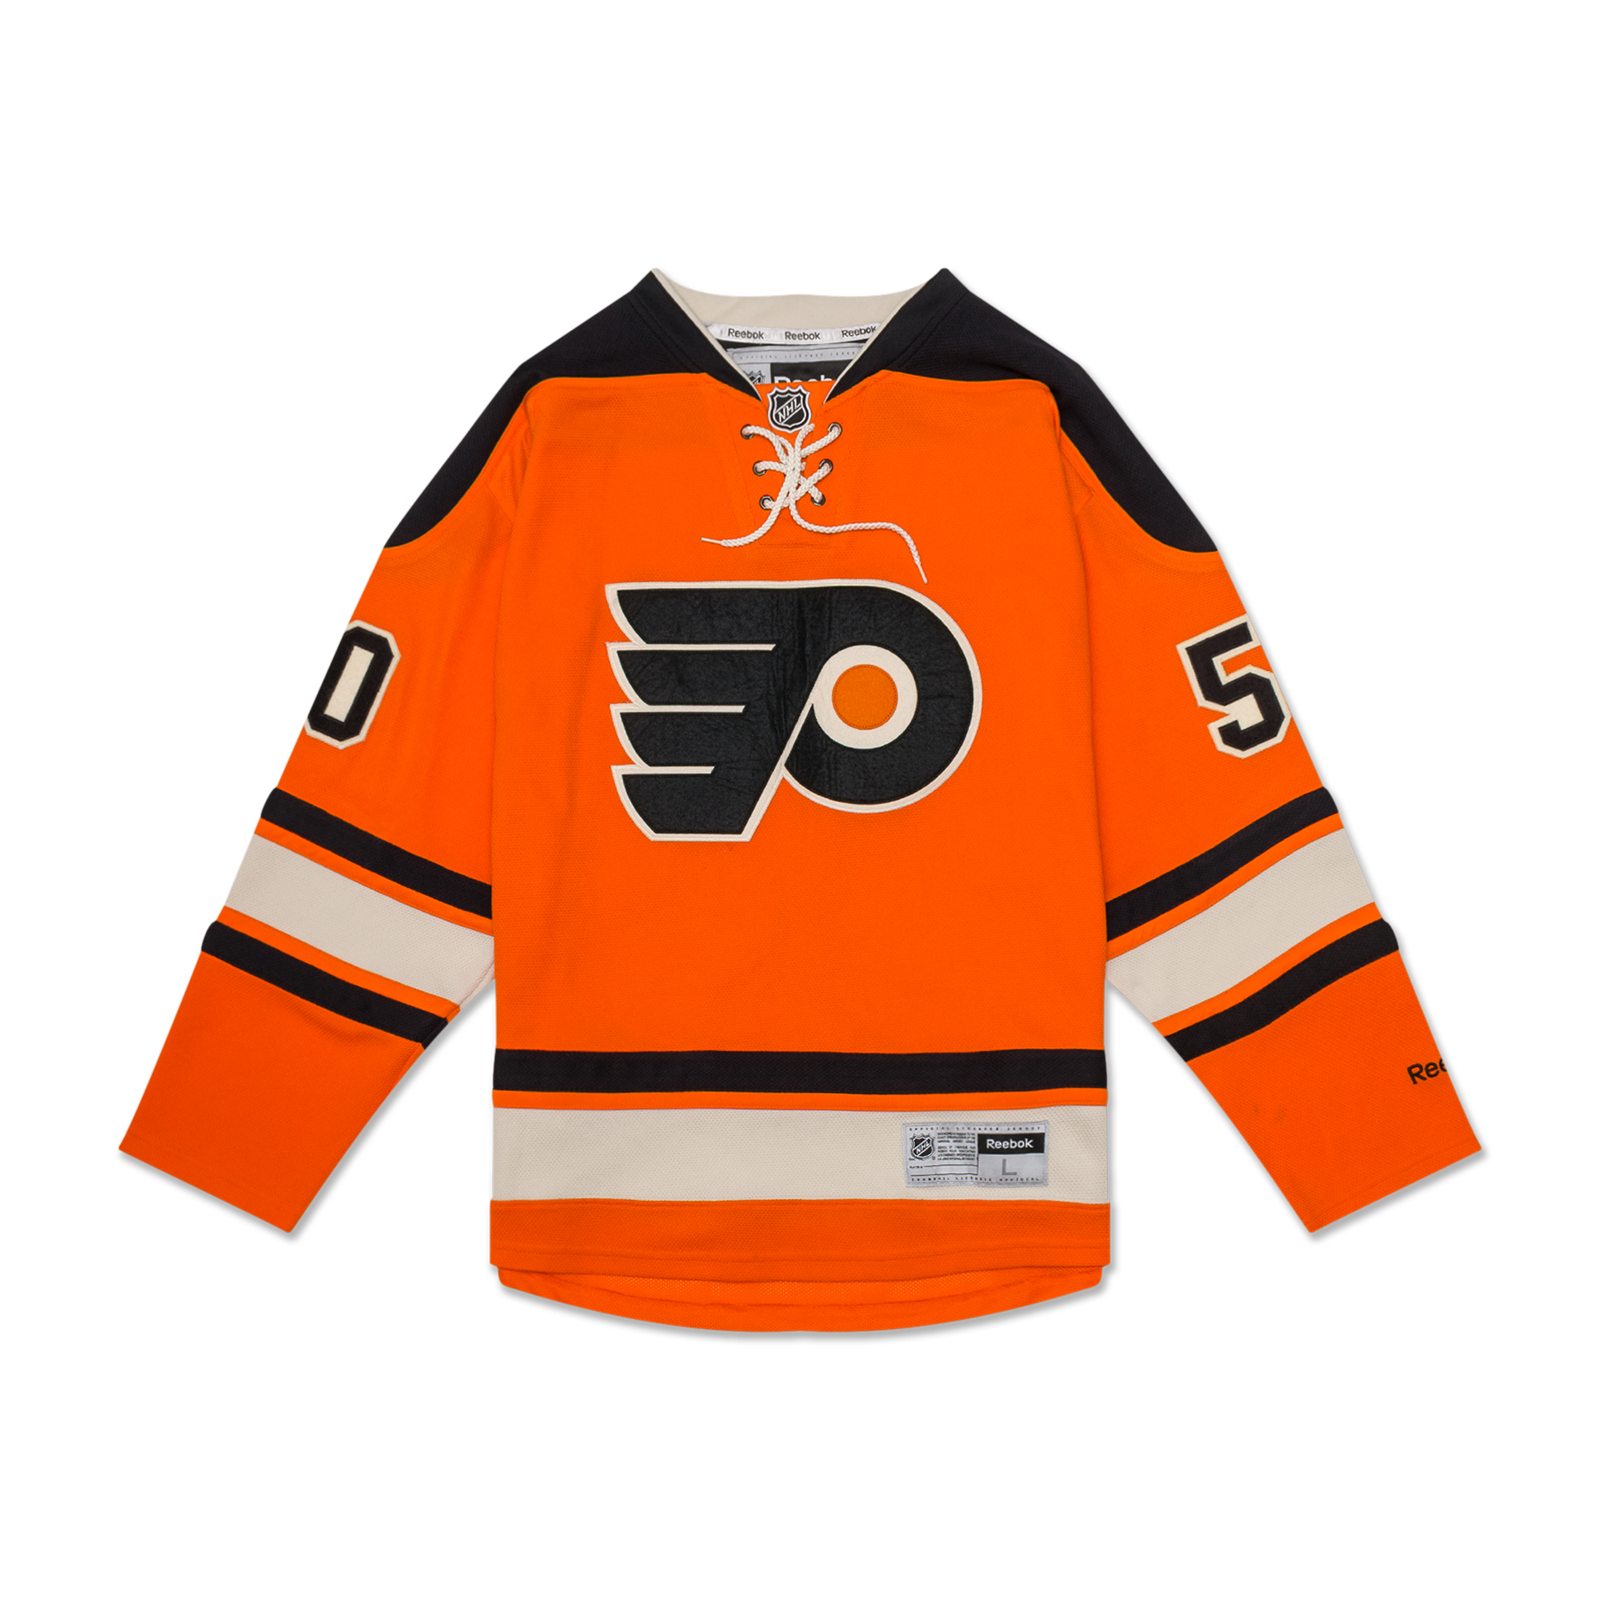 Flat lay jersey product image